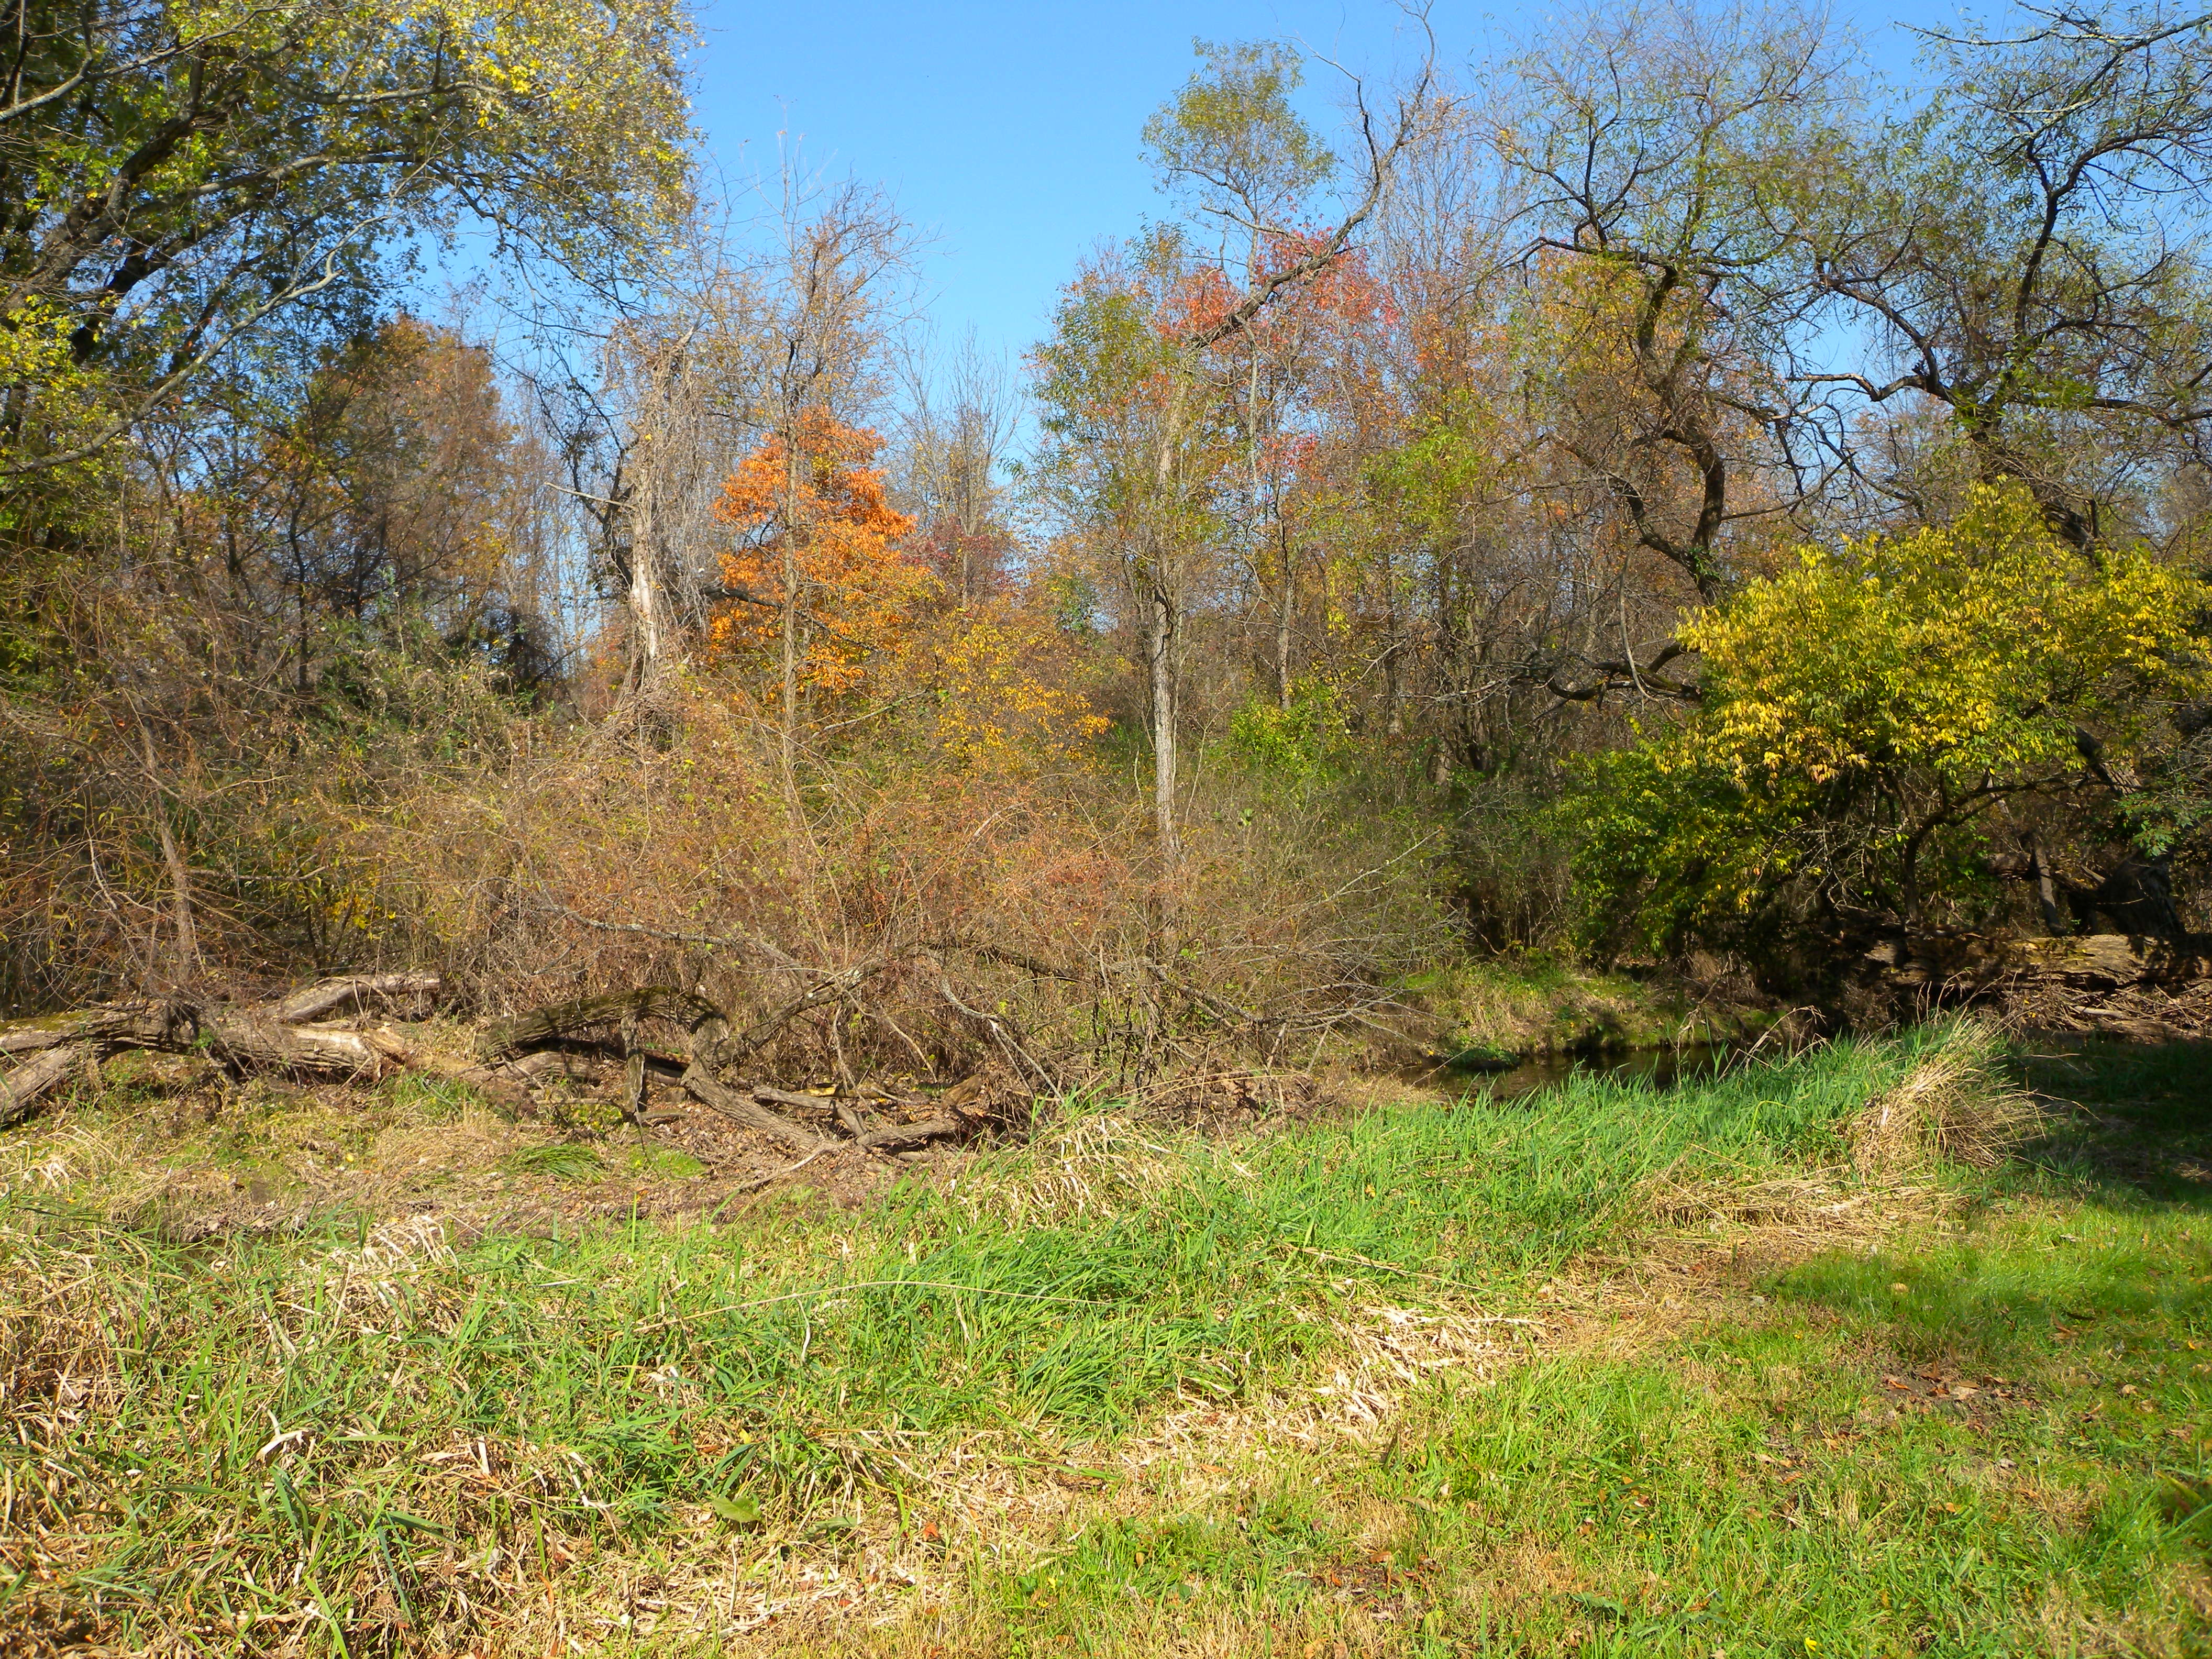 """This shrubby habitat may include invasive plants and may look """"messy"""", but it is stable and provides great habitat structure for birds."""